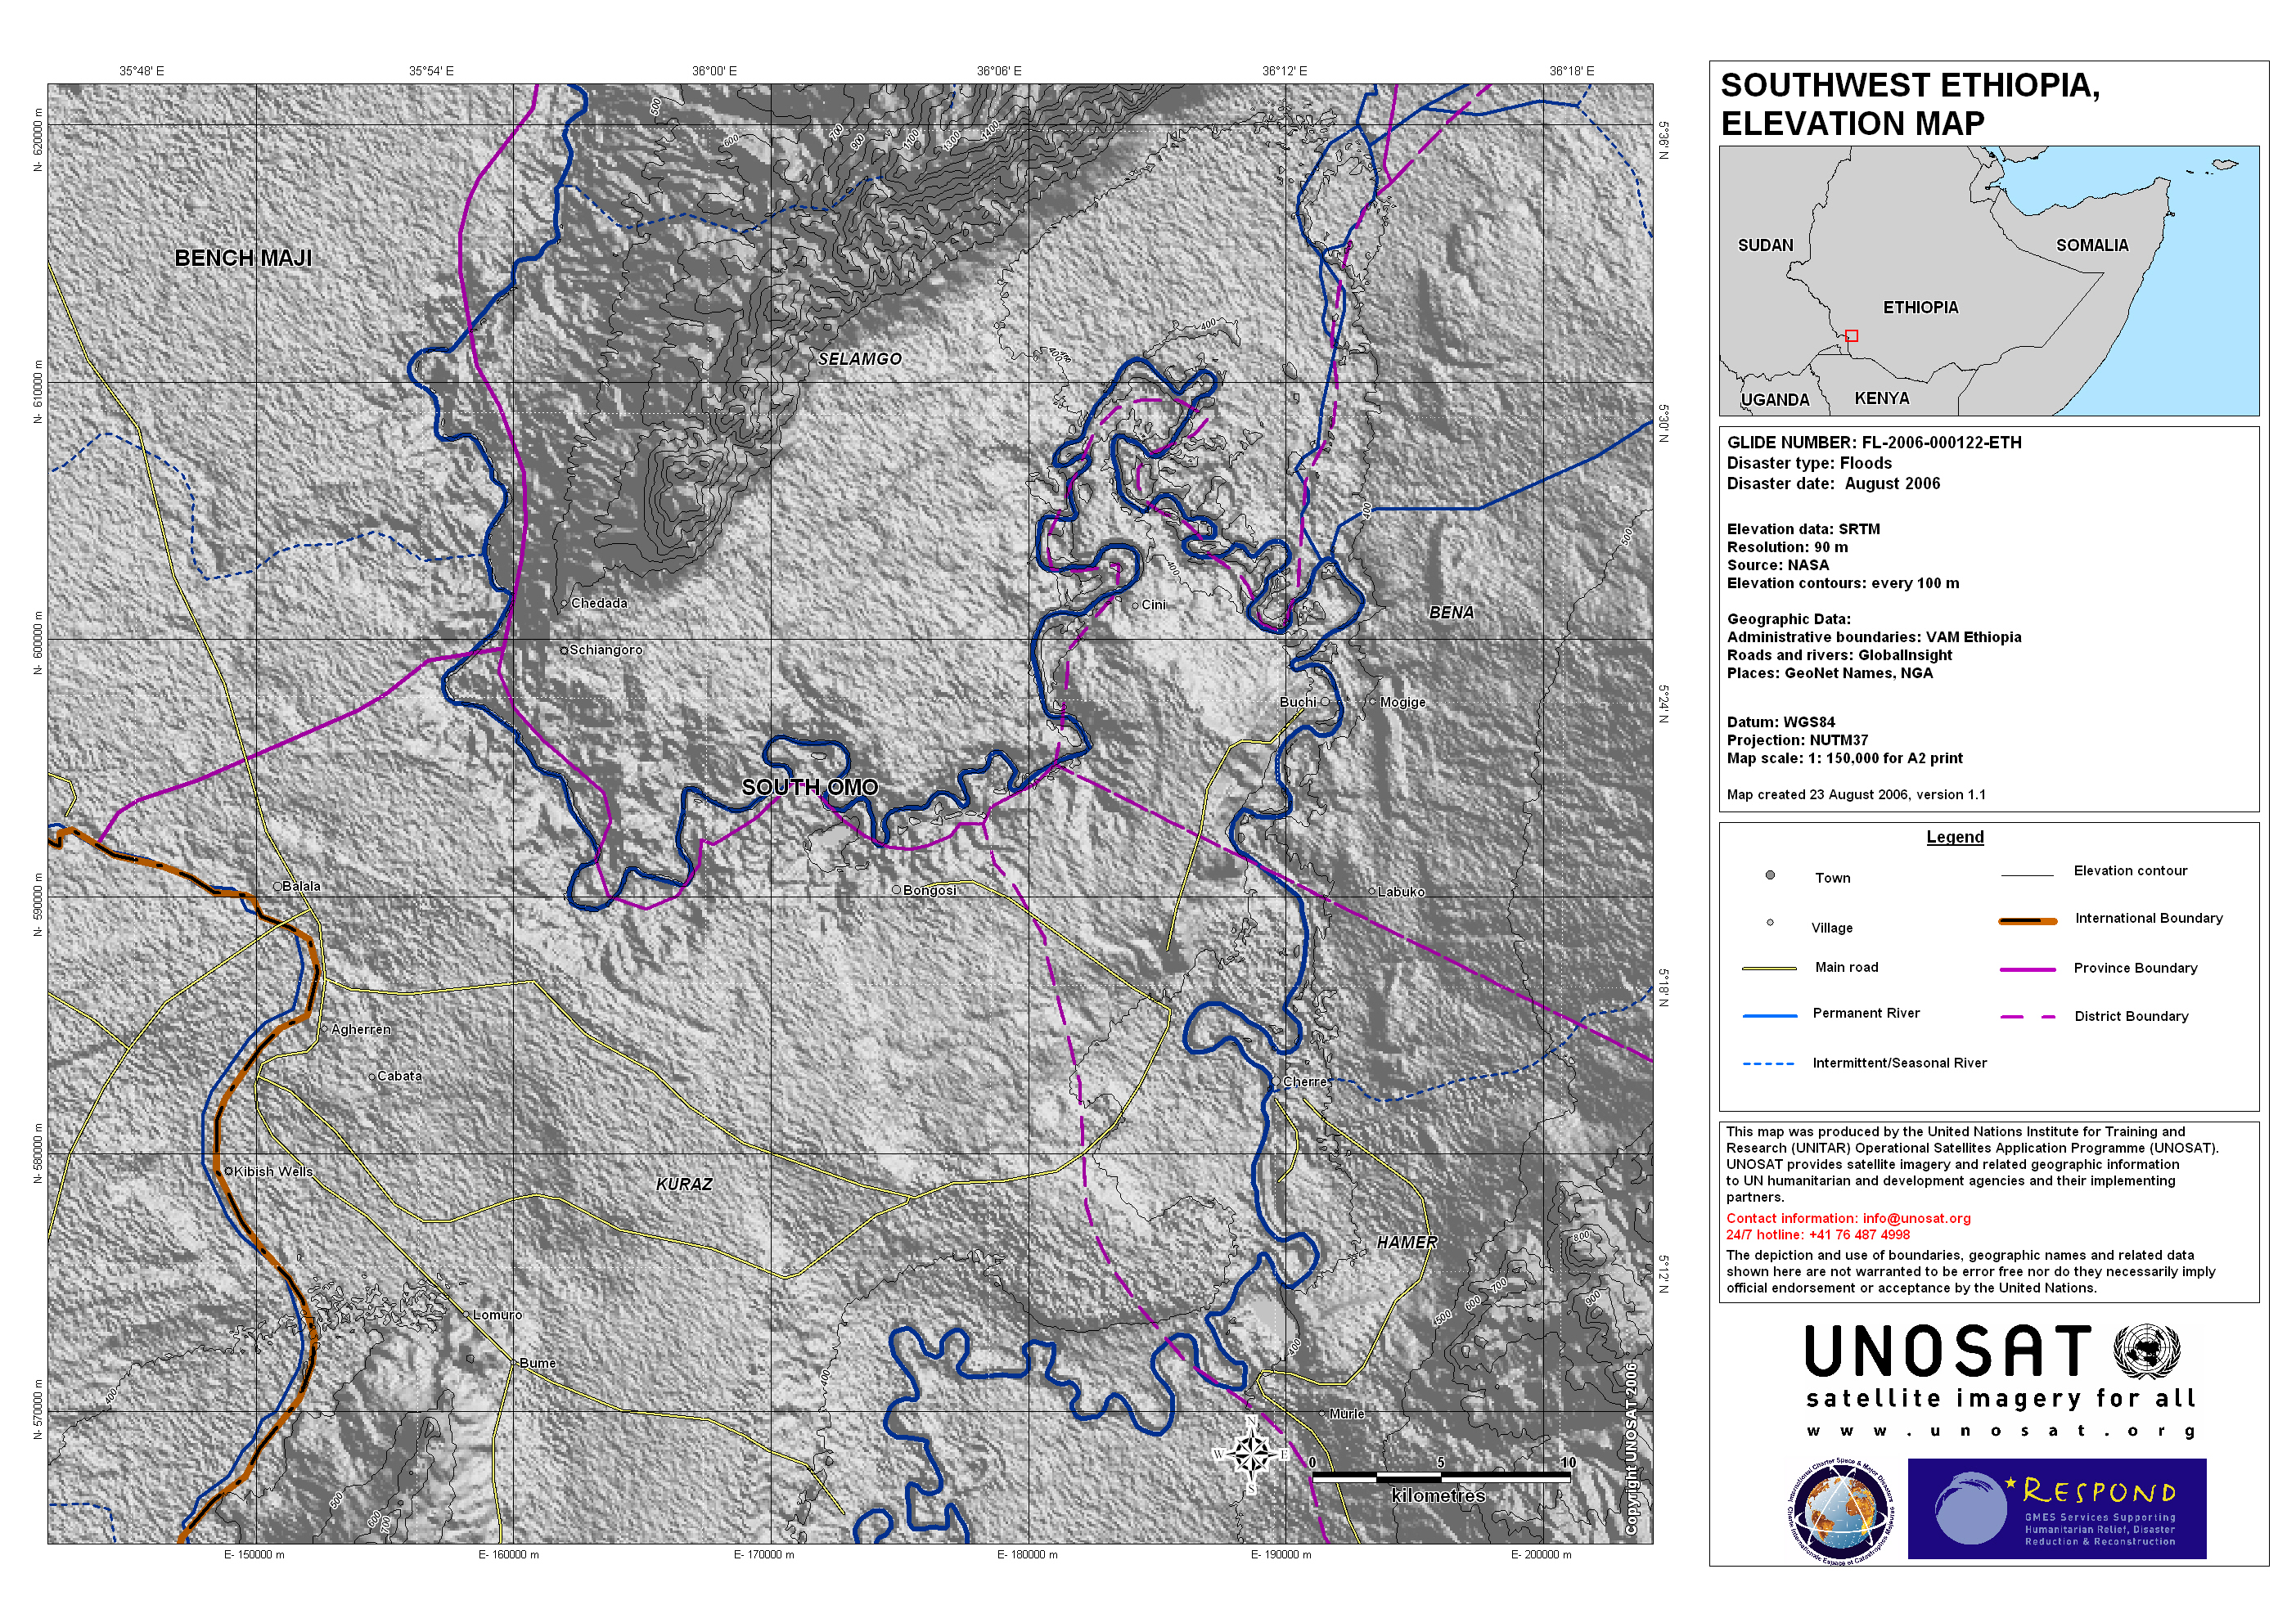 Southwest Ethiopia South Omo Province Elevation Map UNITAR - Florida elevation map